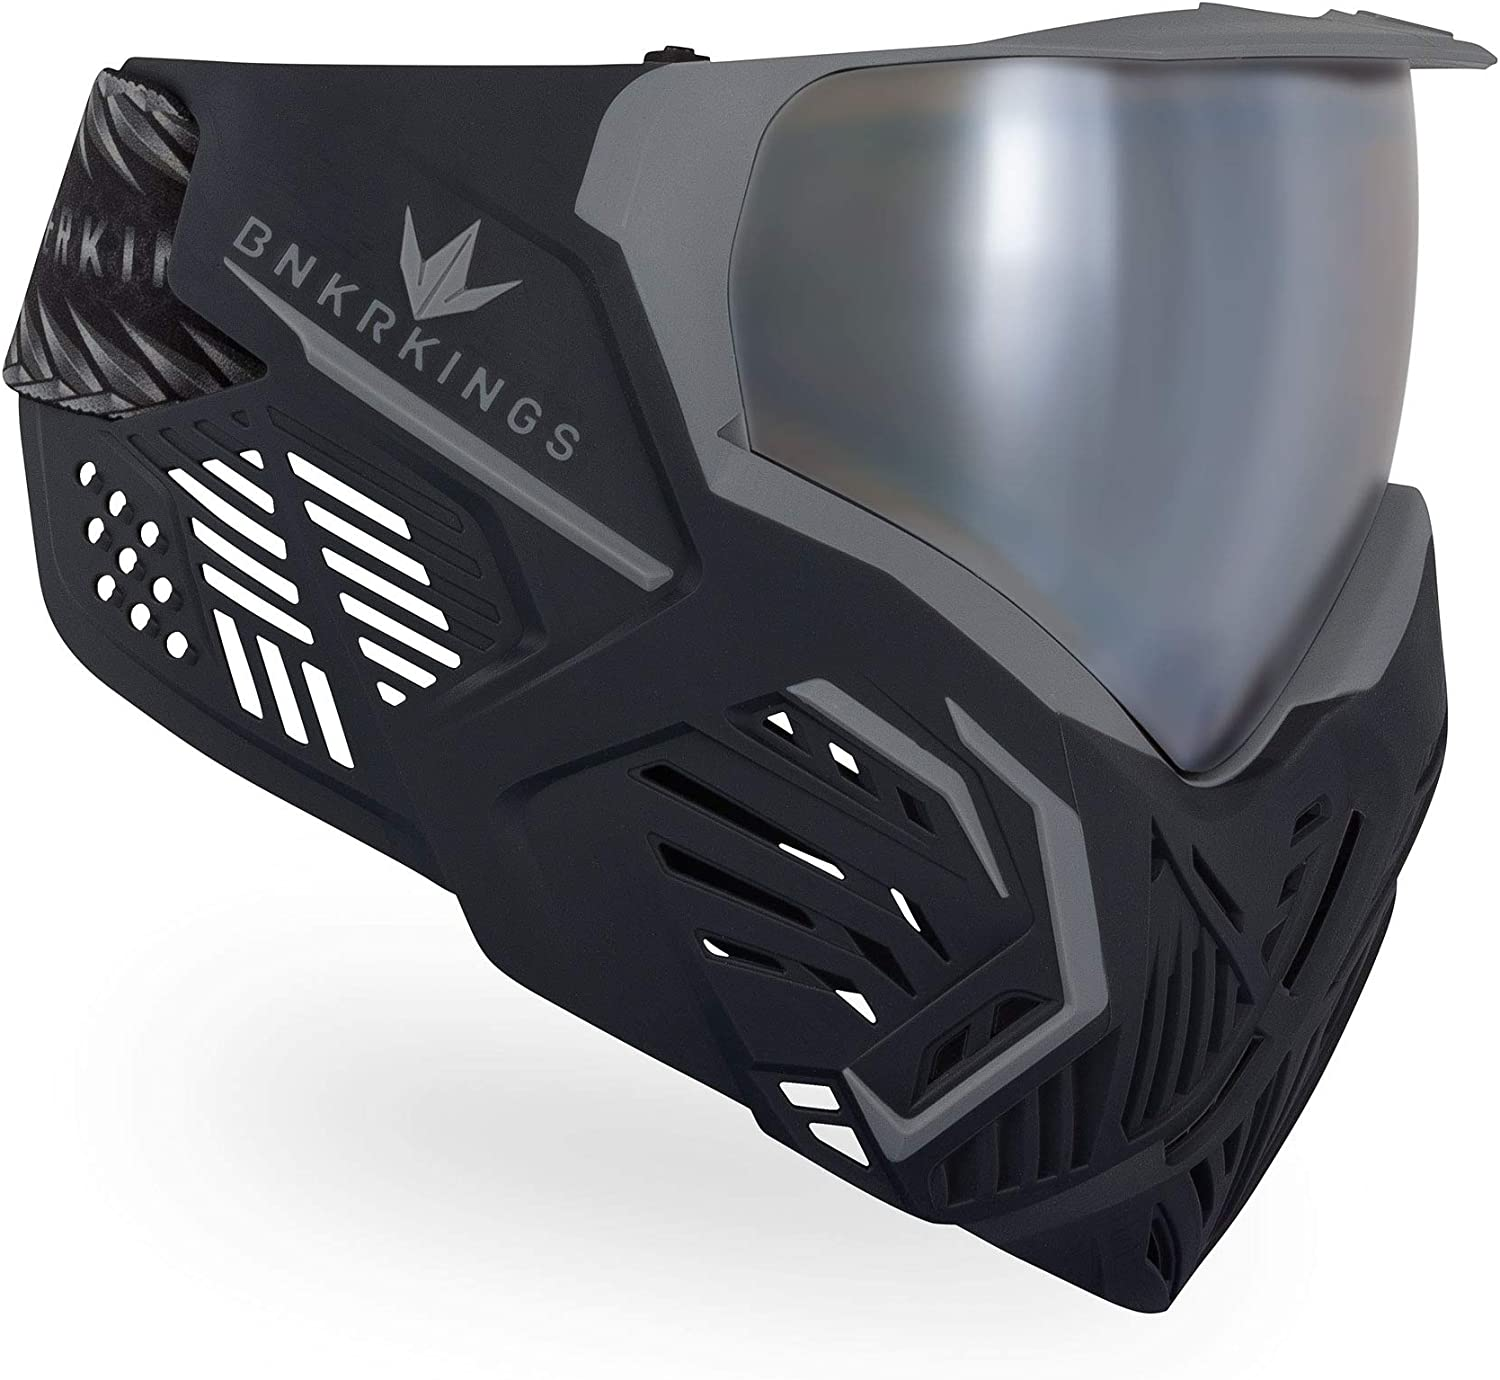 Bunkerkings CMD Paintball Gorgeous Department store Masks Goggles